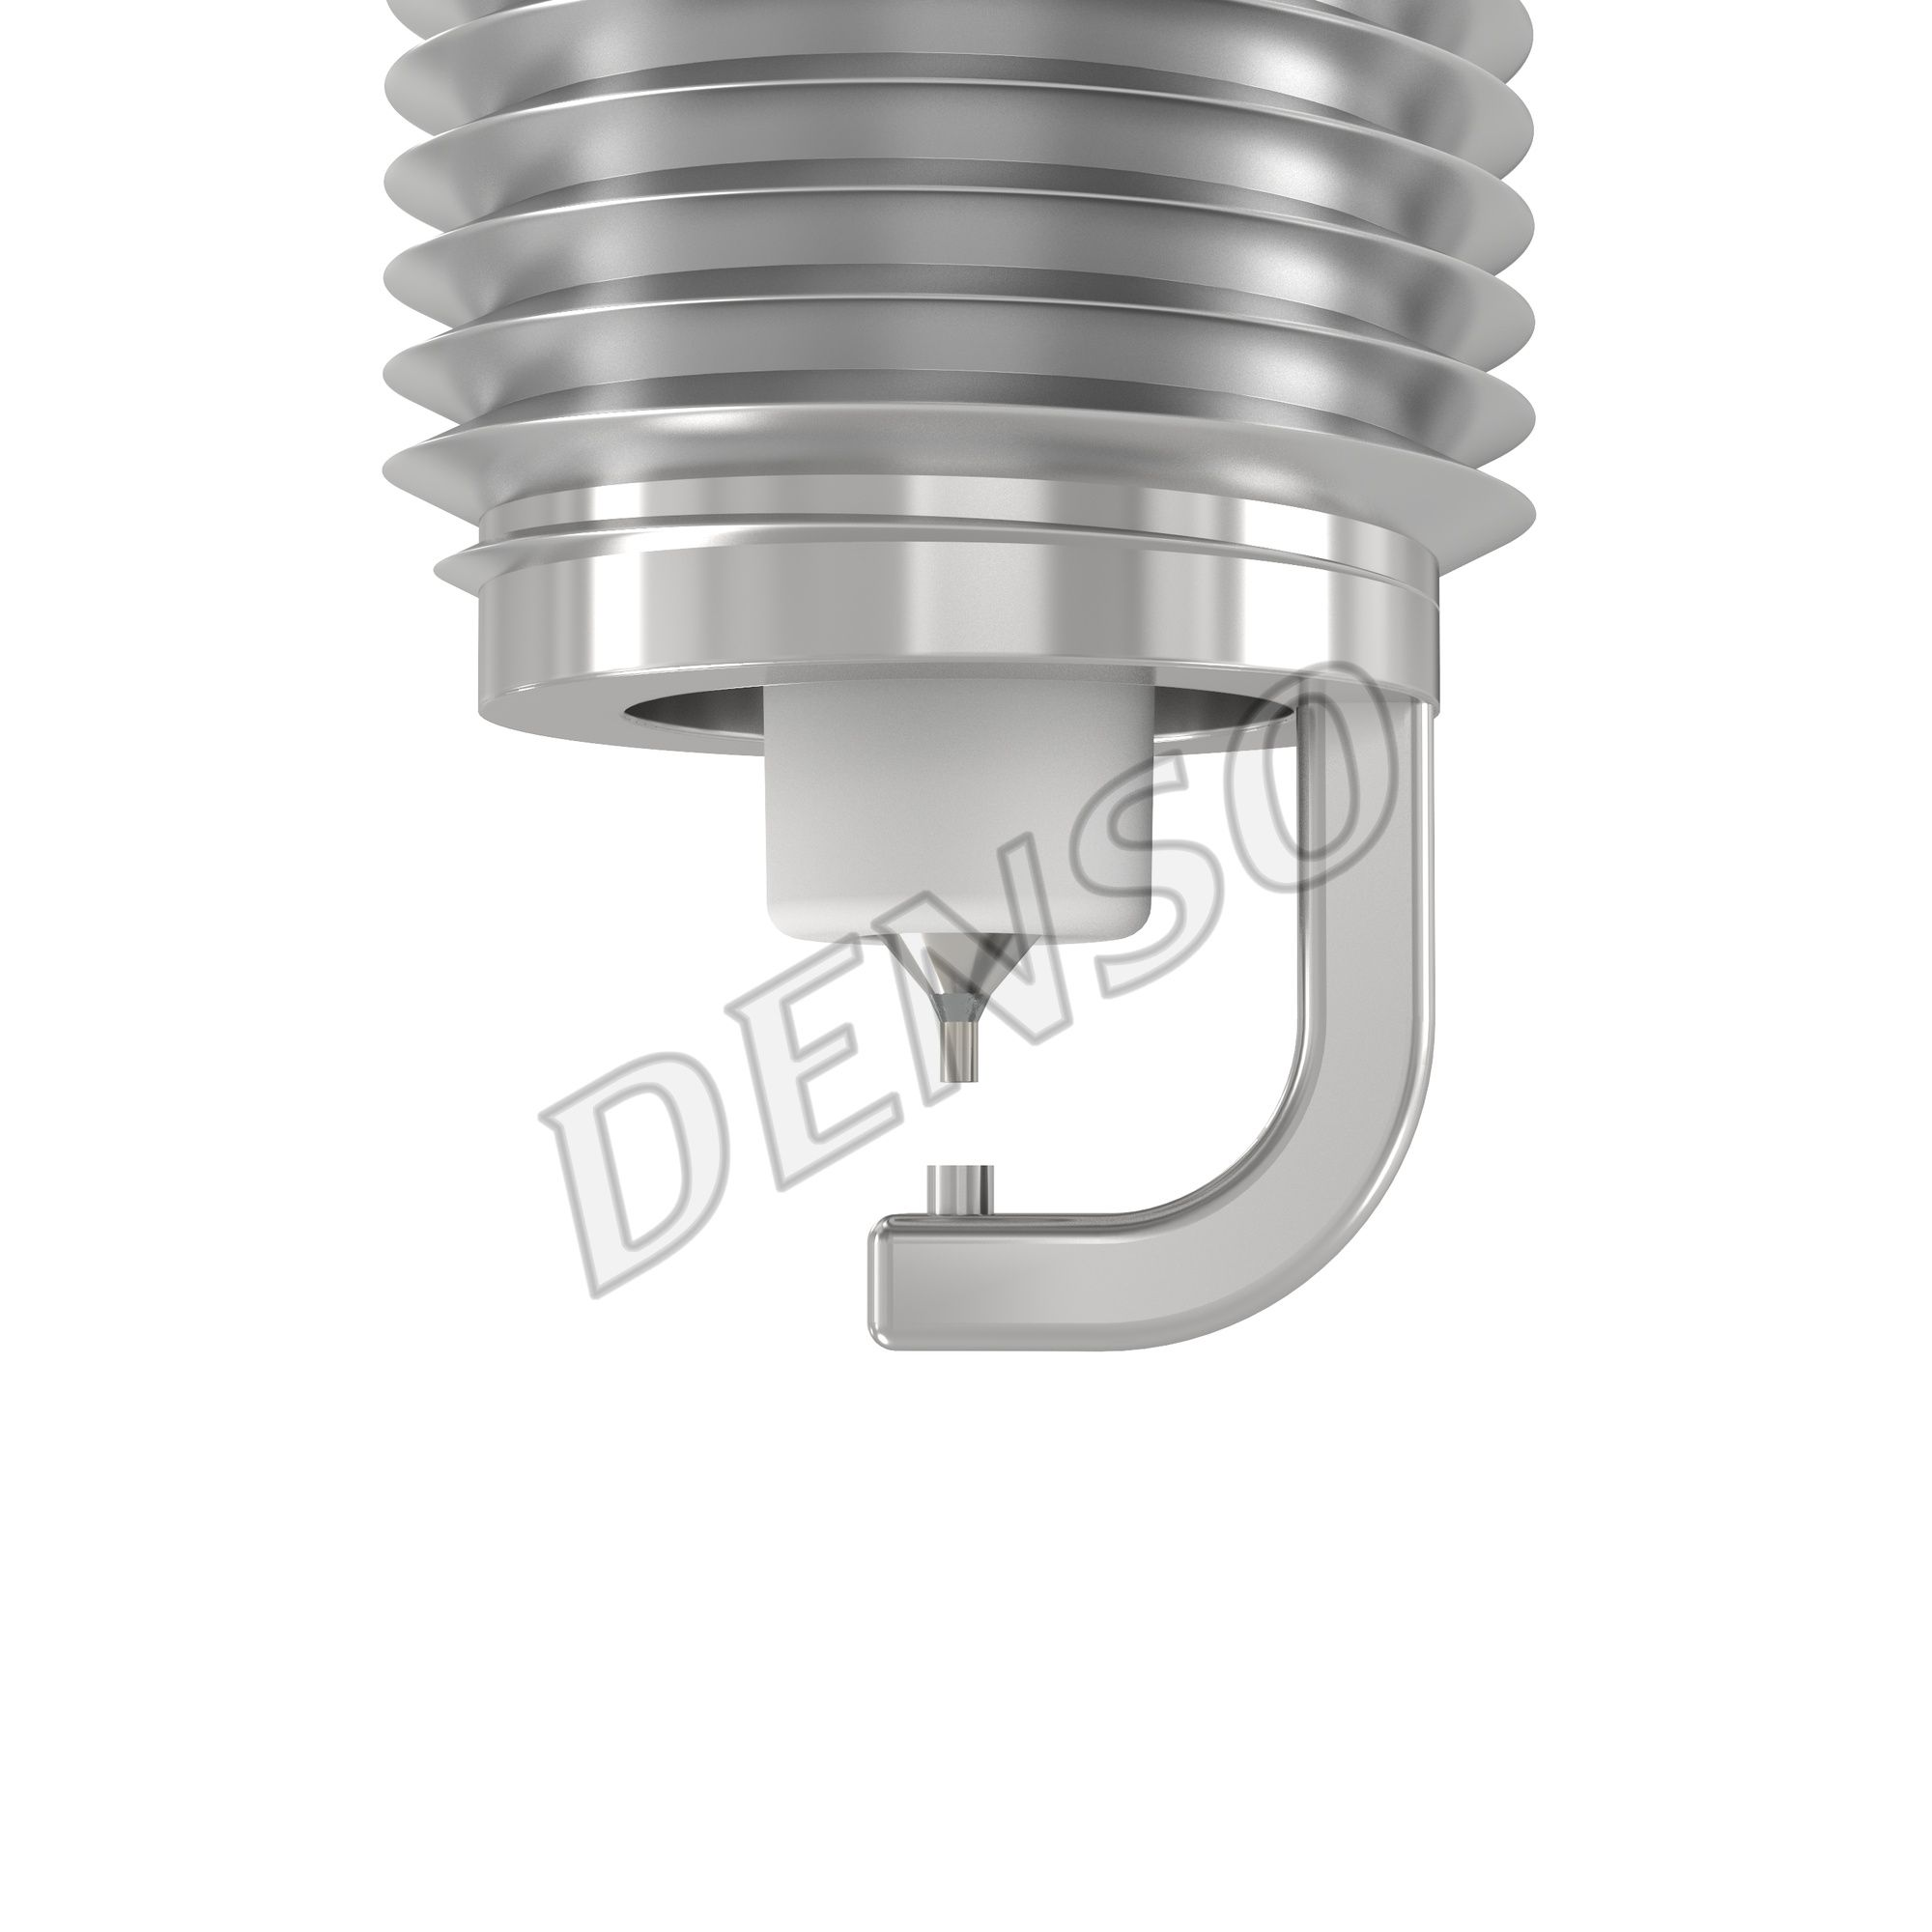 Article № 4704 DENSO prices